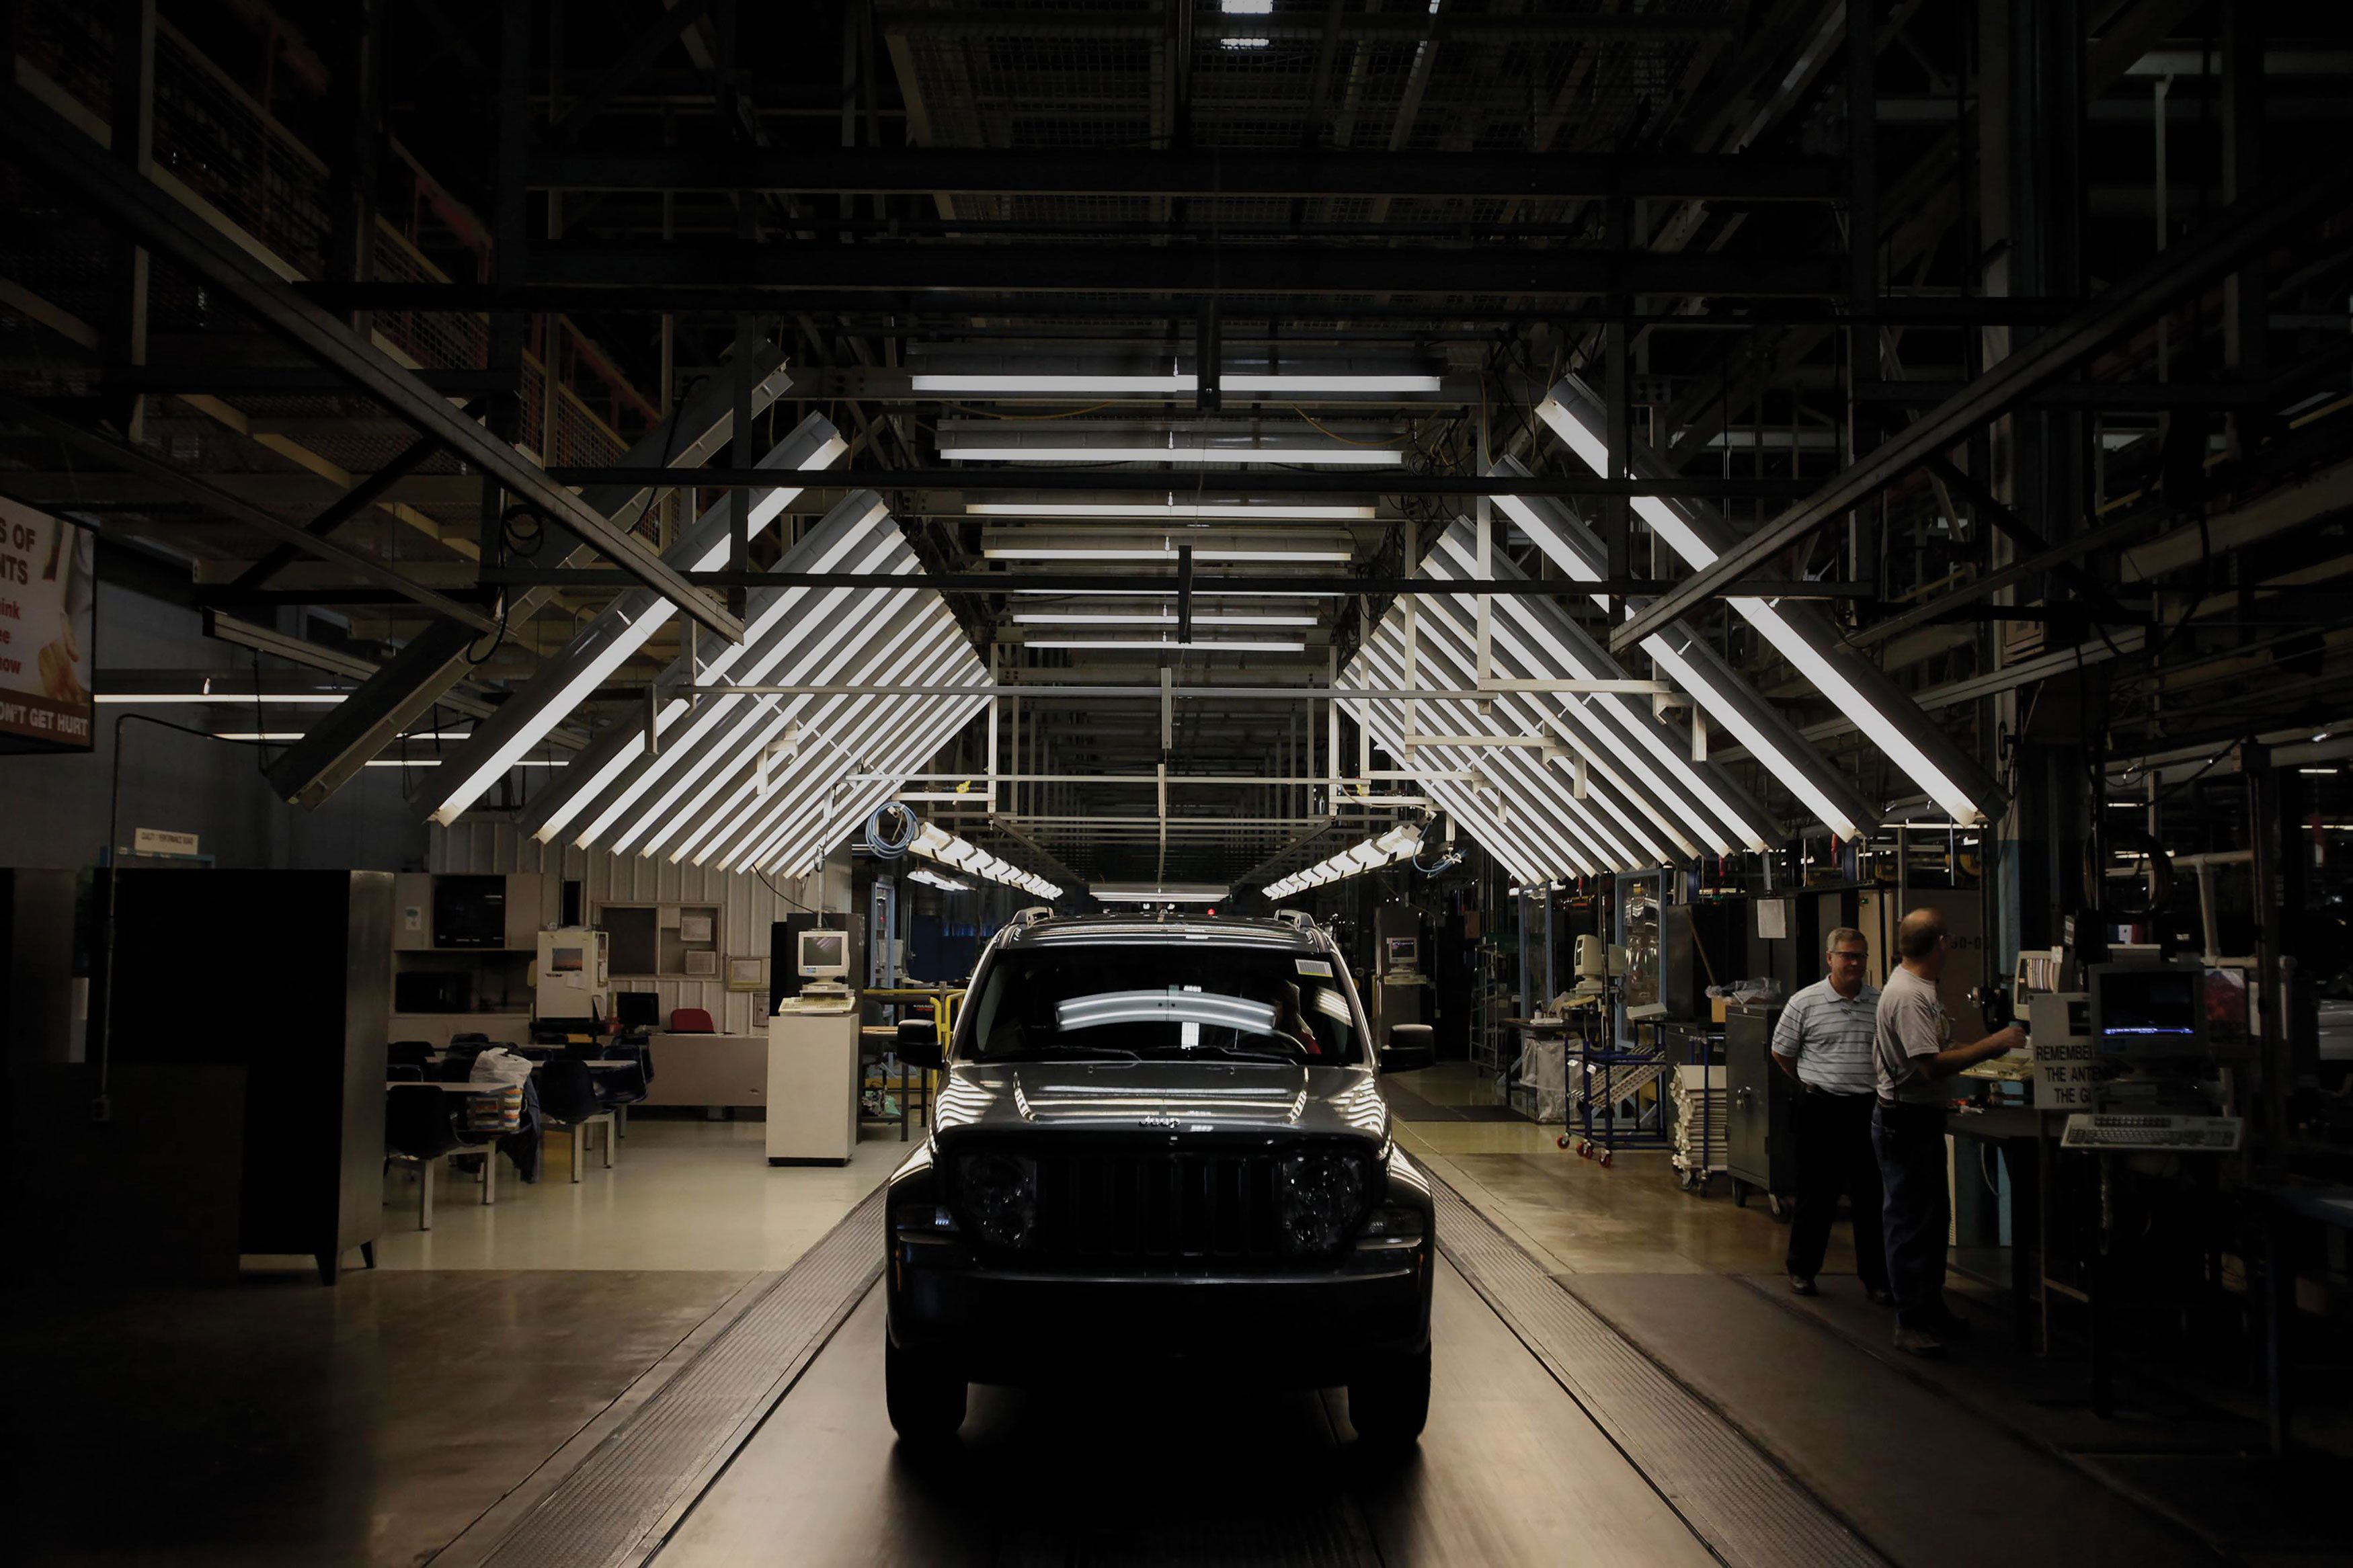 Why Robots Helped Donald Trump Win Mit Technology Review New Jeep That Looks Like Rober